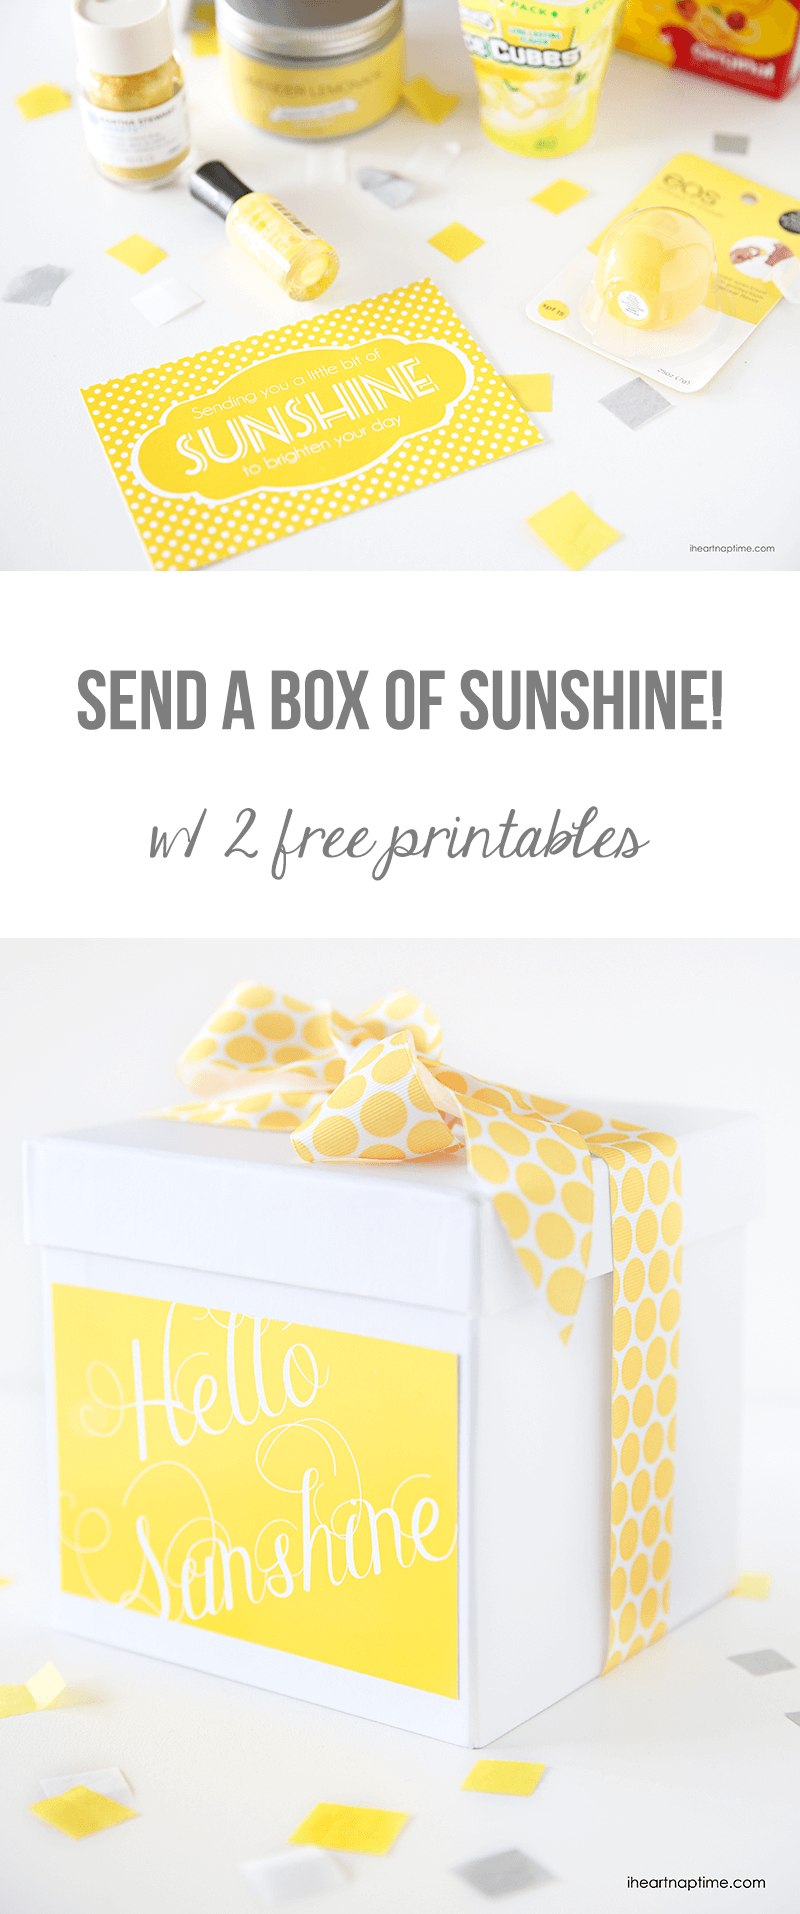 Send A Box Of Sunshine {Free Printables} - Box Of Sunshine Free Printable